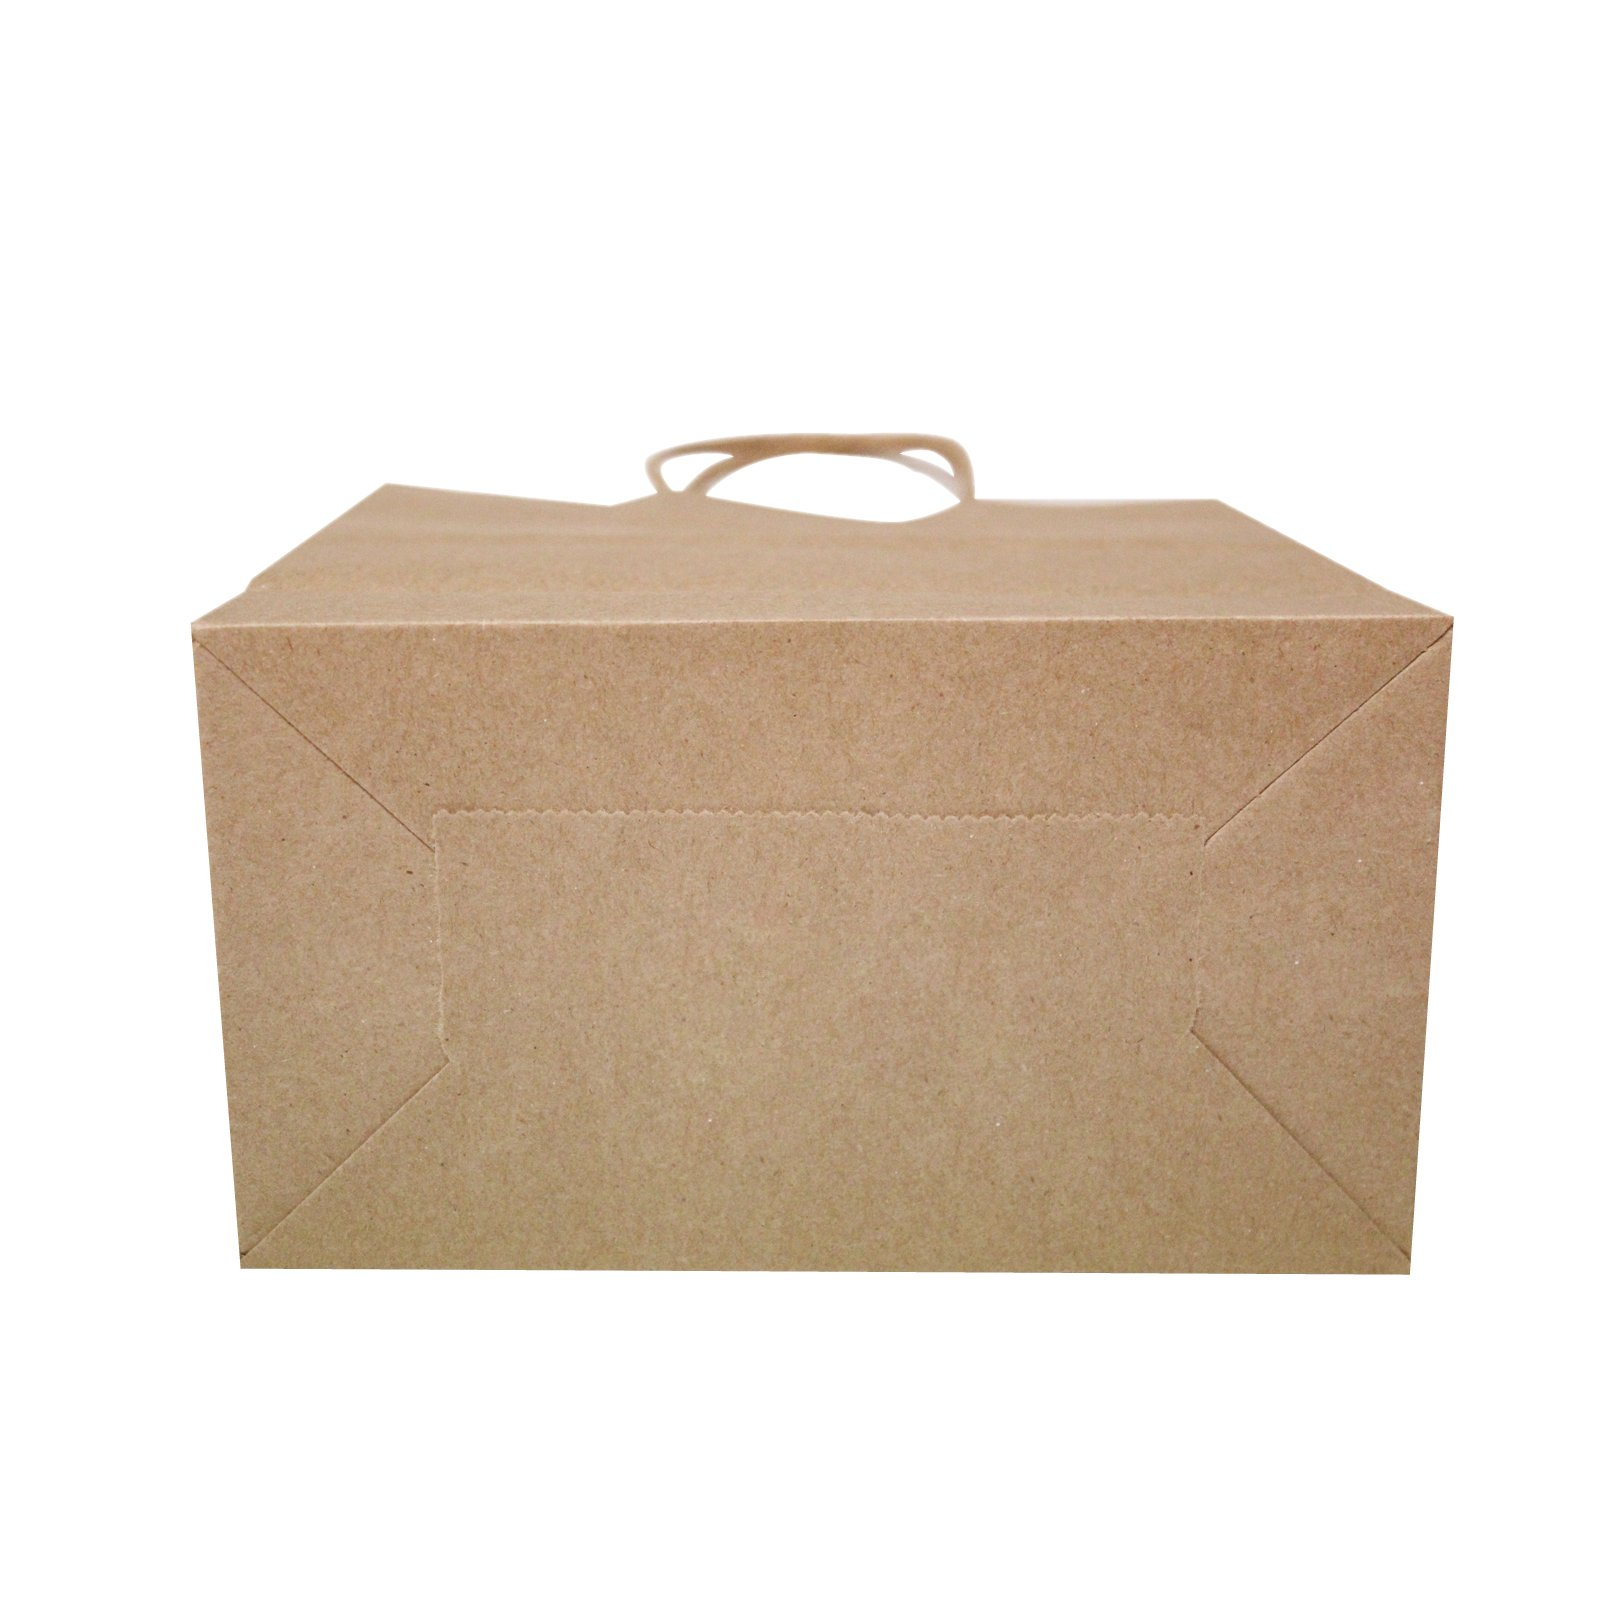 Flexicore Packaging 8''x4.75''x10''-100 Pcs-Brown Kraft Paper Shopping, Mechandise, Party, Gift Bags by Duro (Image #4)